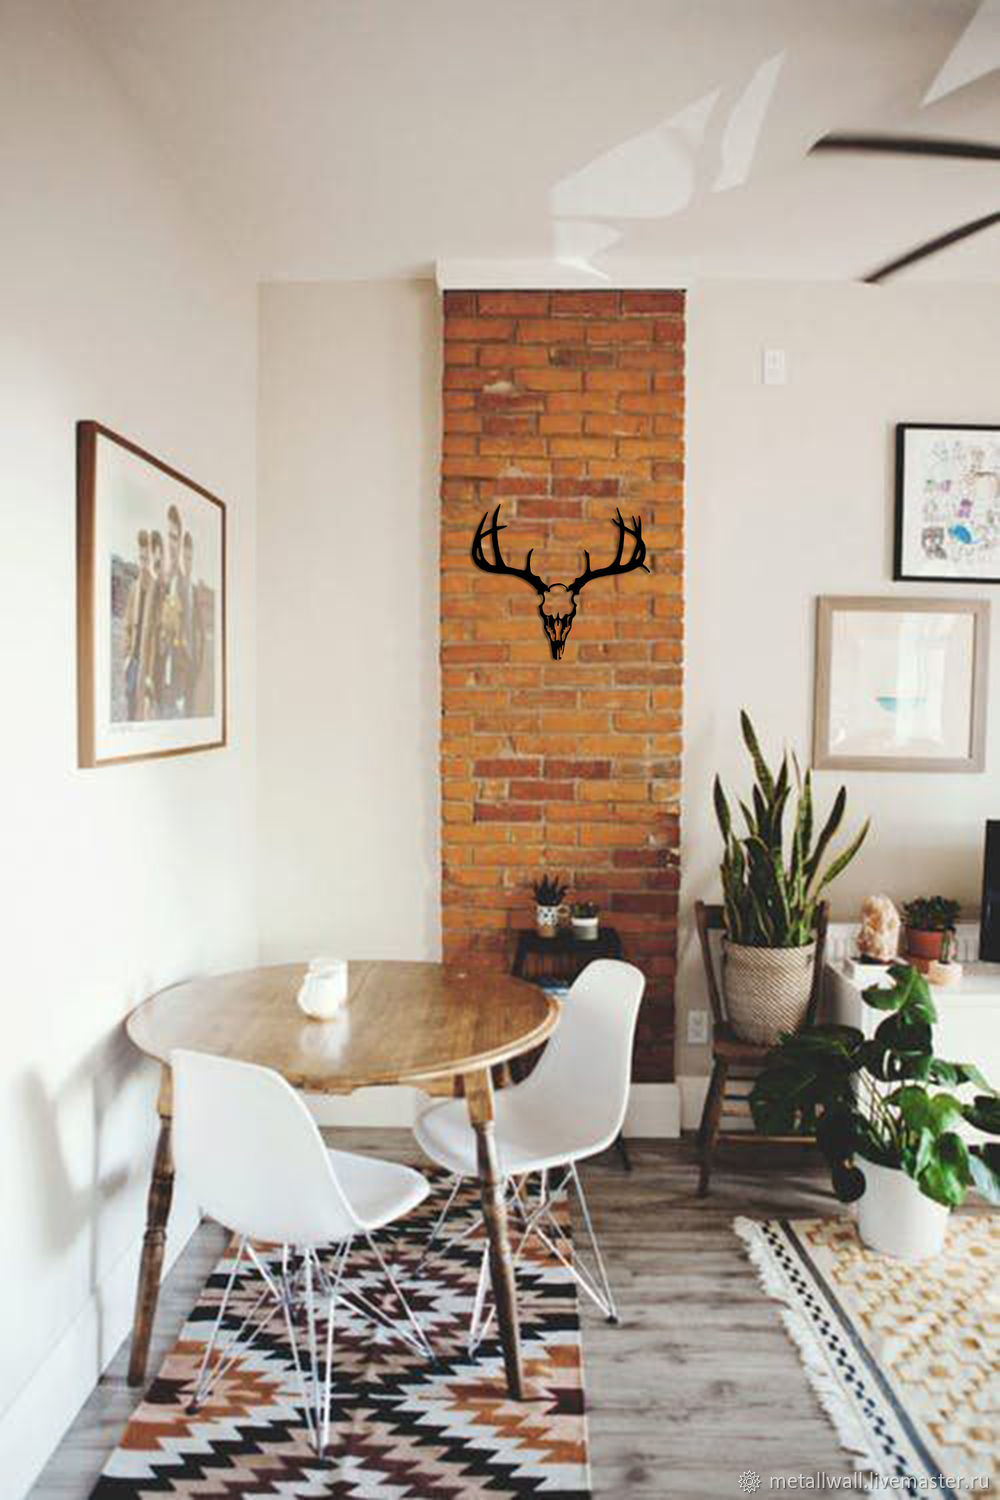 Online Shopping On My Interior Design Handmade. Order The Deer SKULL Metal  Decorative. Metallwall. Livemaster.